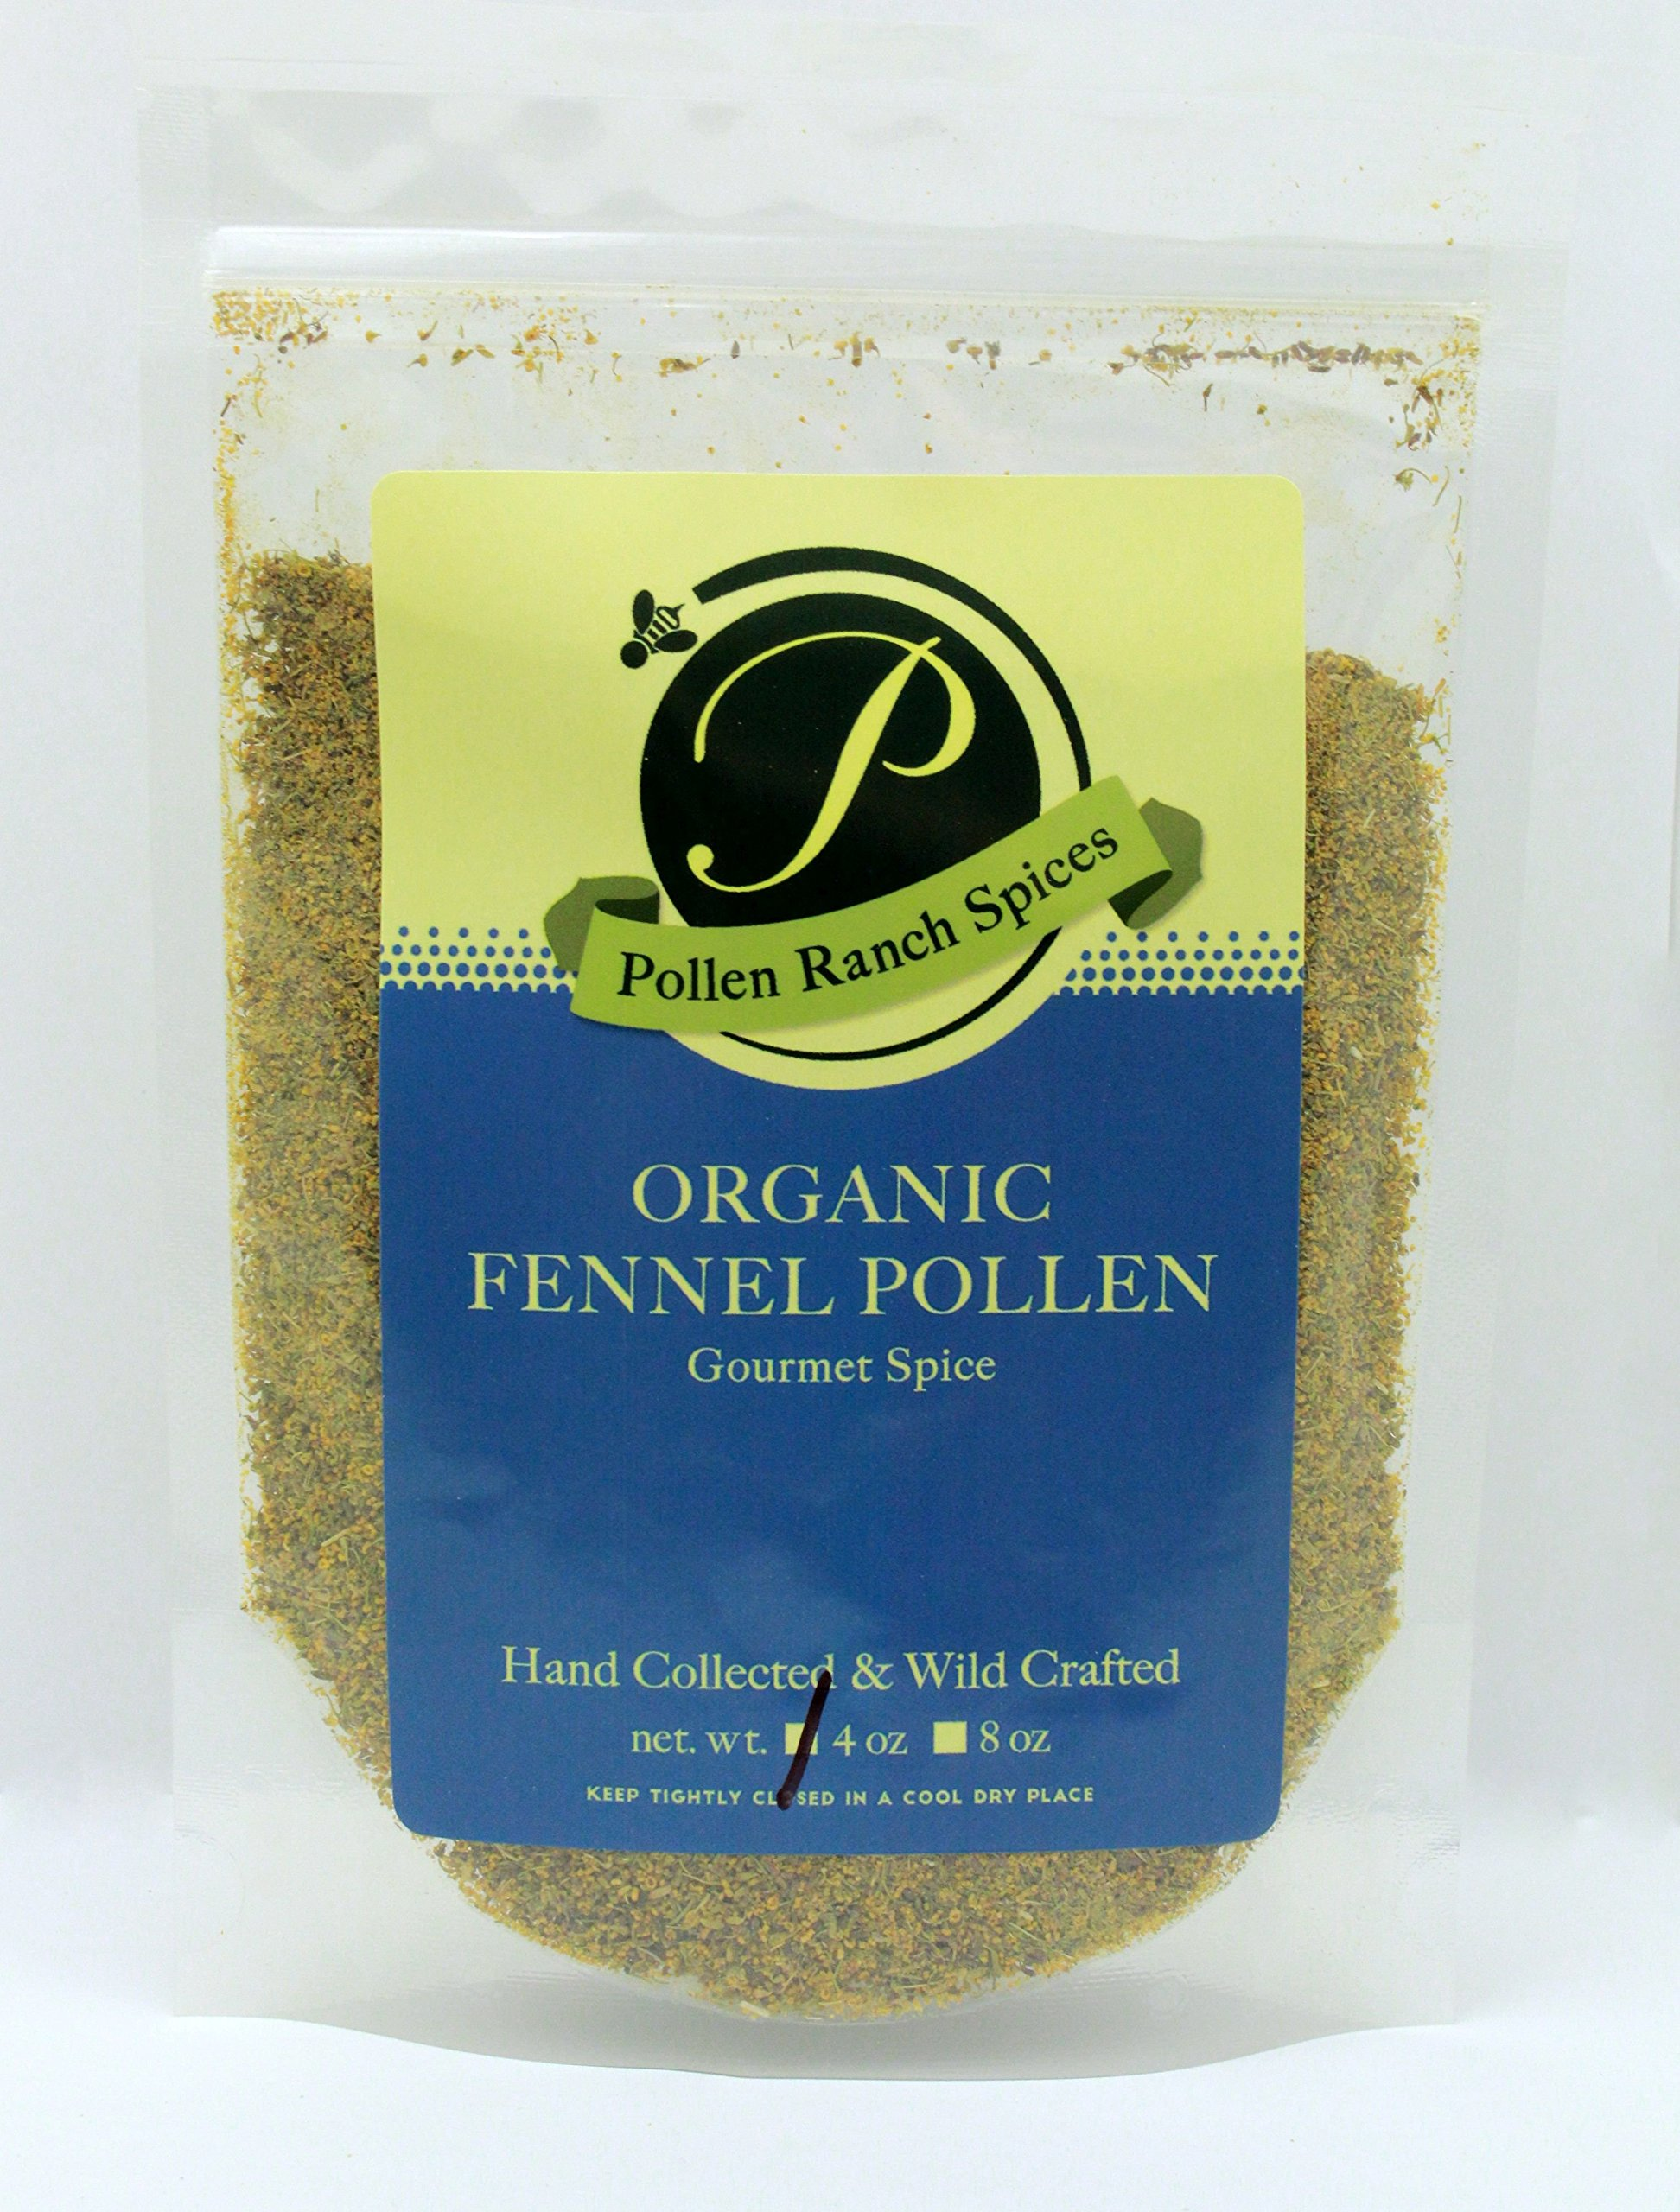 Pollen Ranch Wild Crafted, Organic Fennel Pollen 4 Oz Resealable Pouch